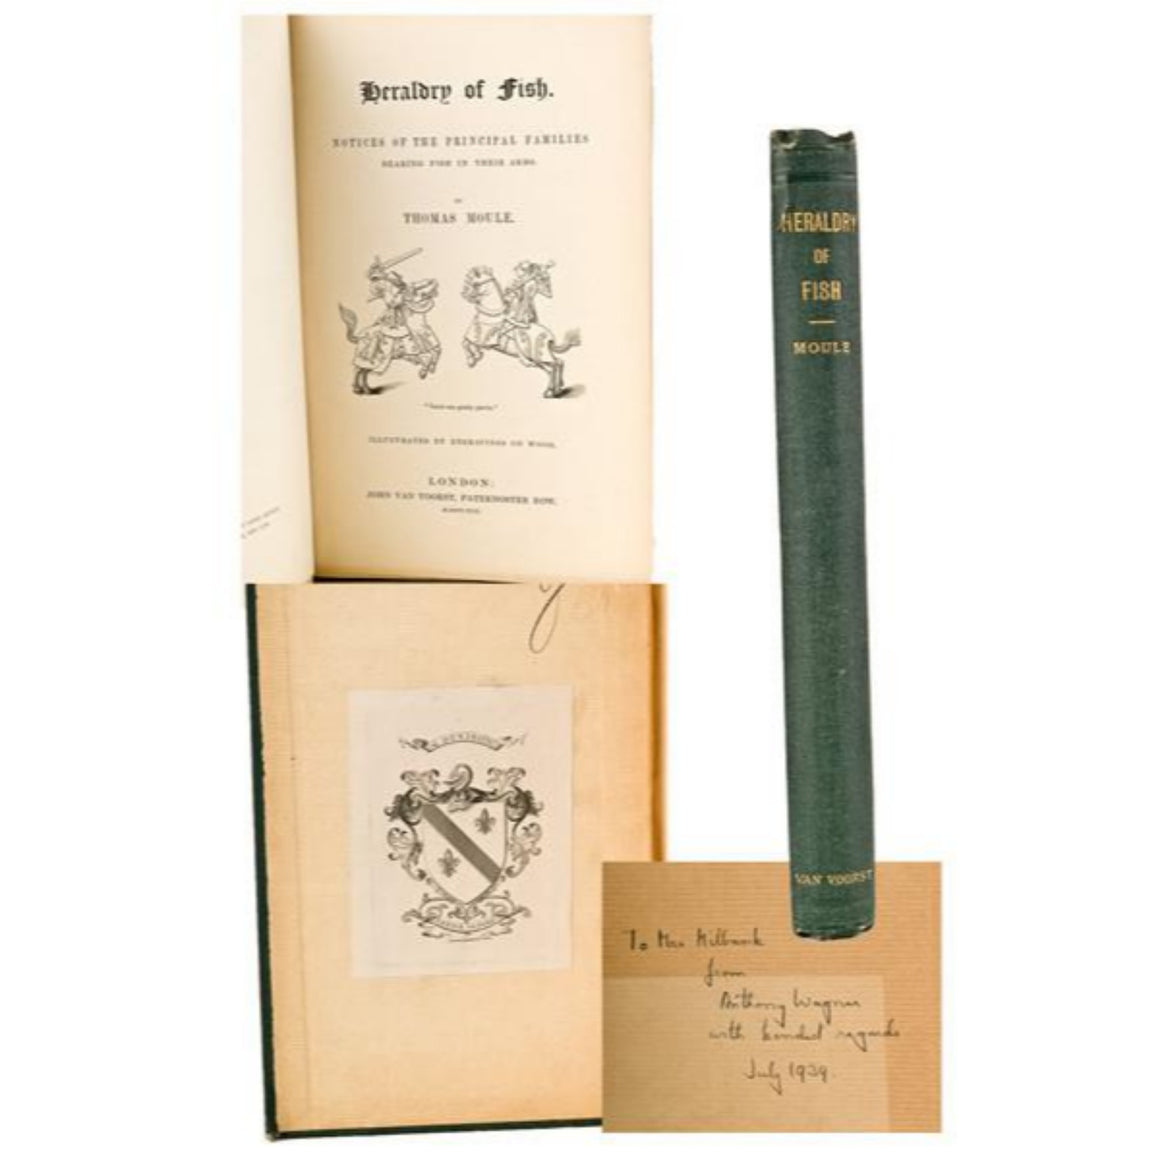 Heraldry of Fish: Notices of The Principal Families 1842 by Thomas Moule